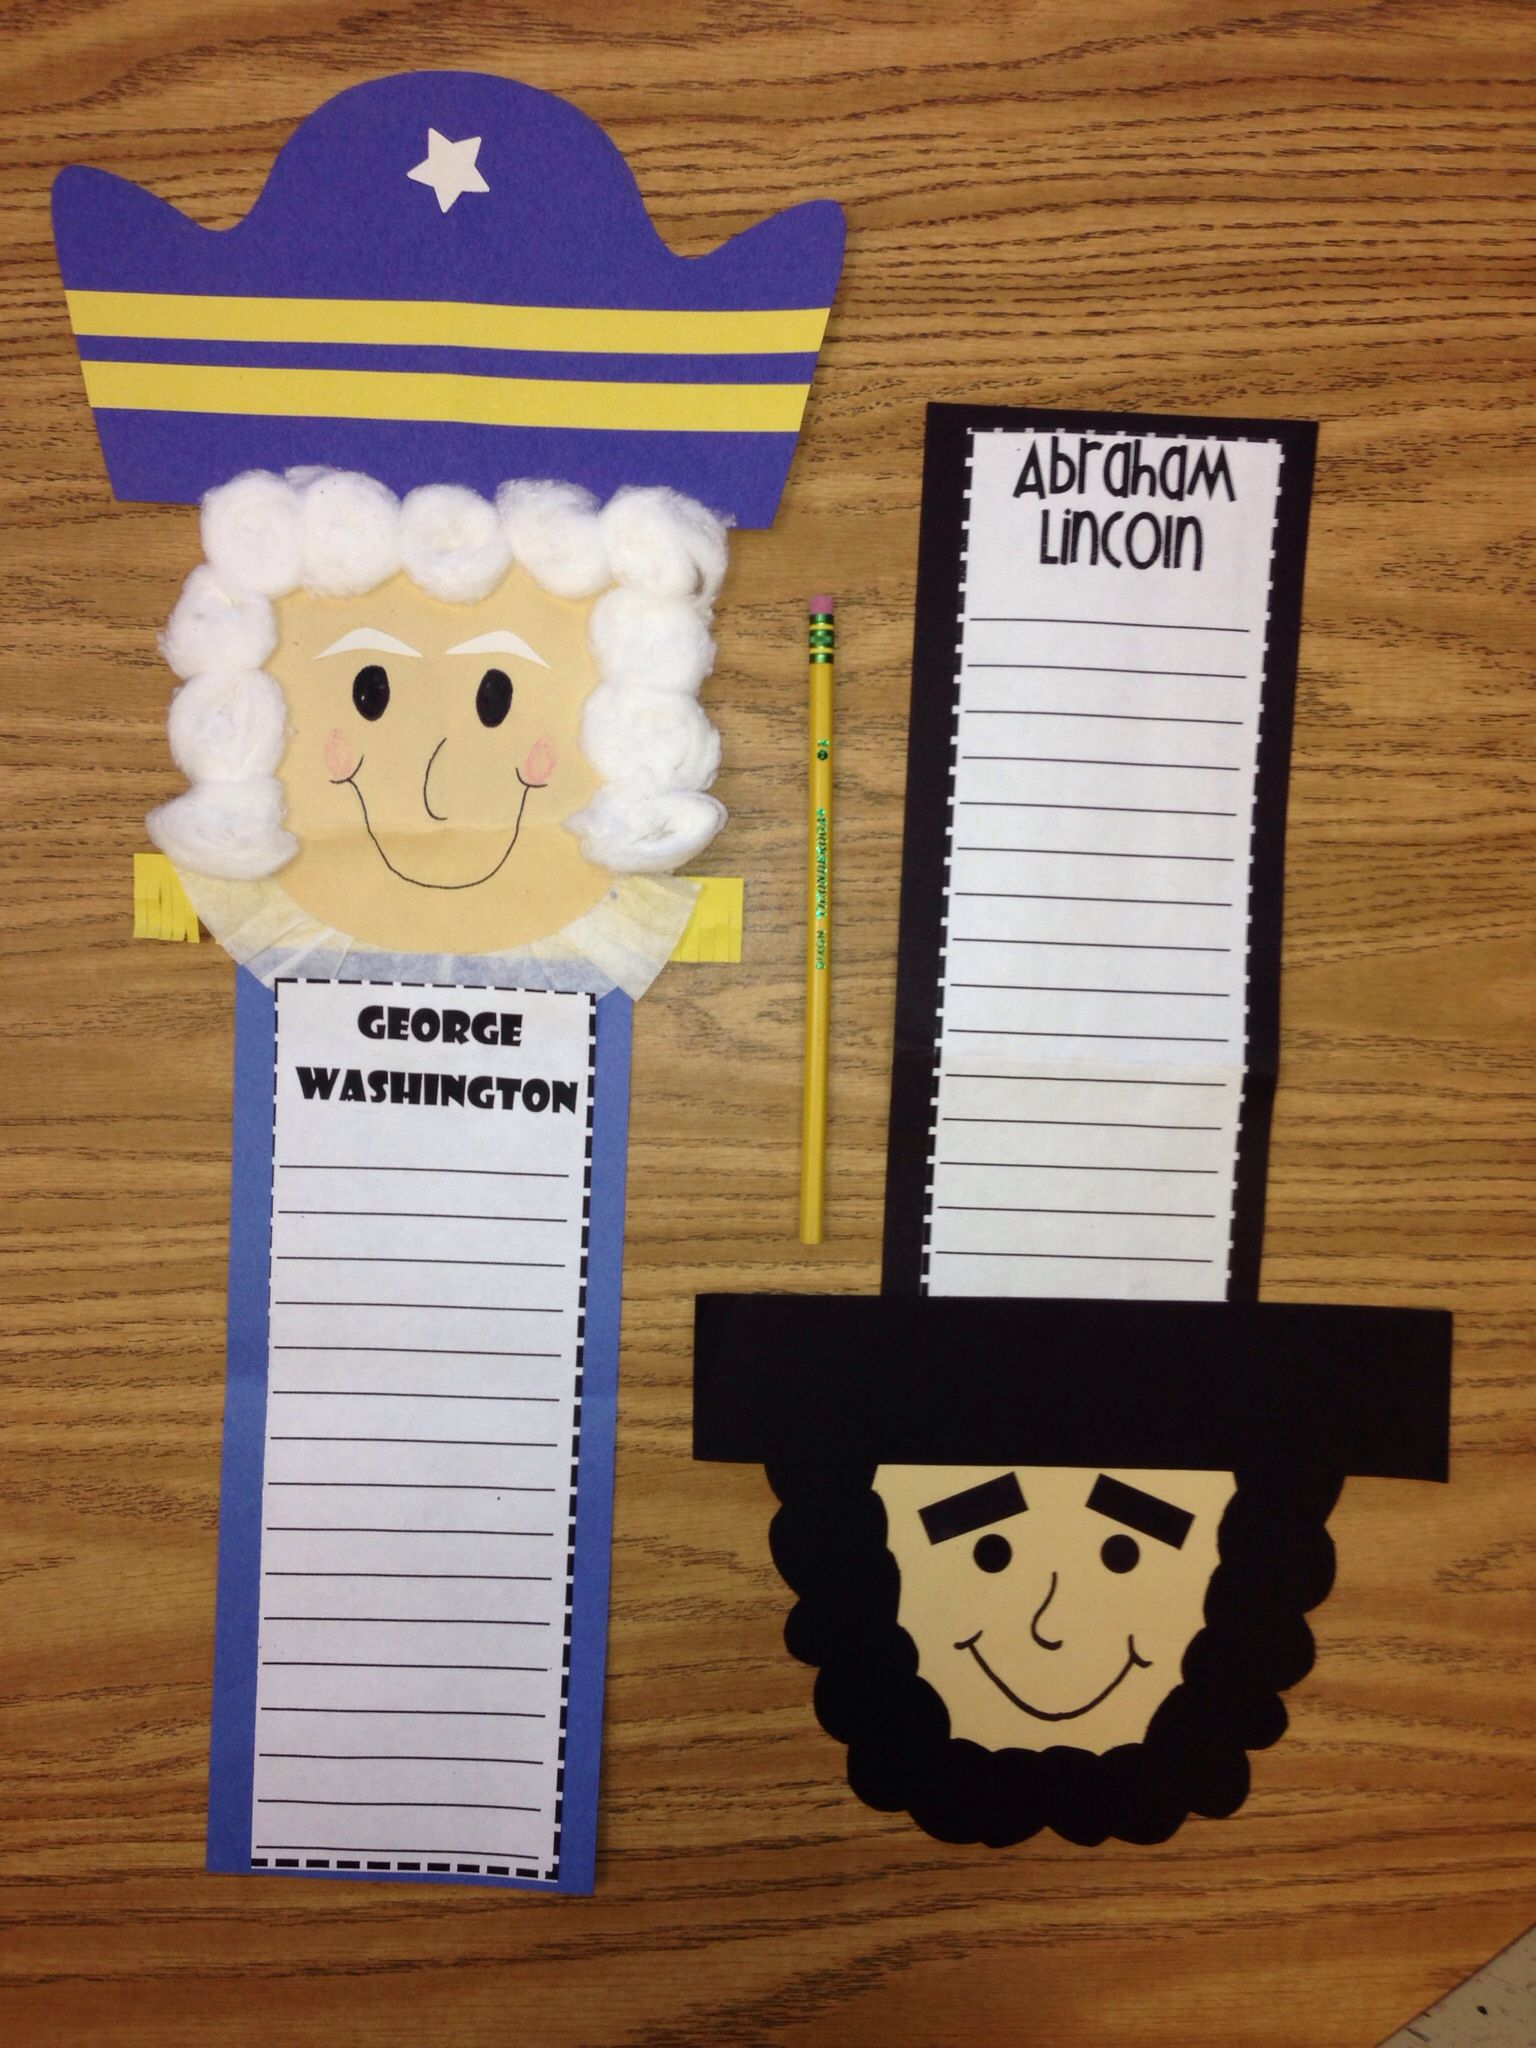 President S Day Craft George Washington Abe Lincoln